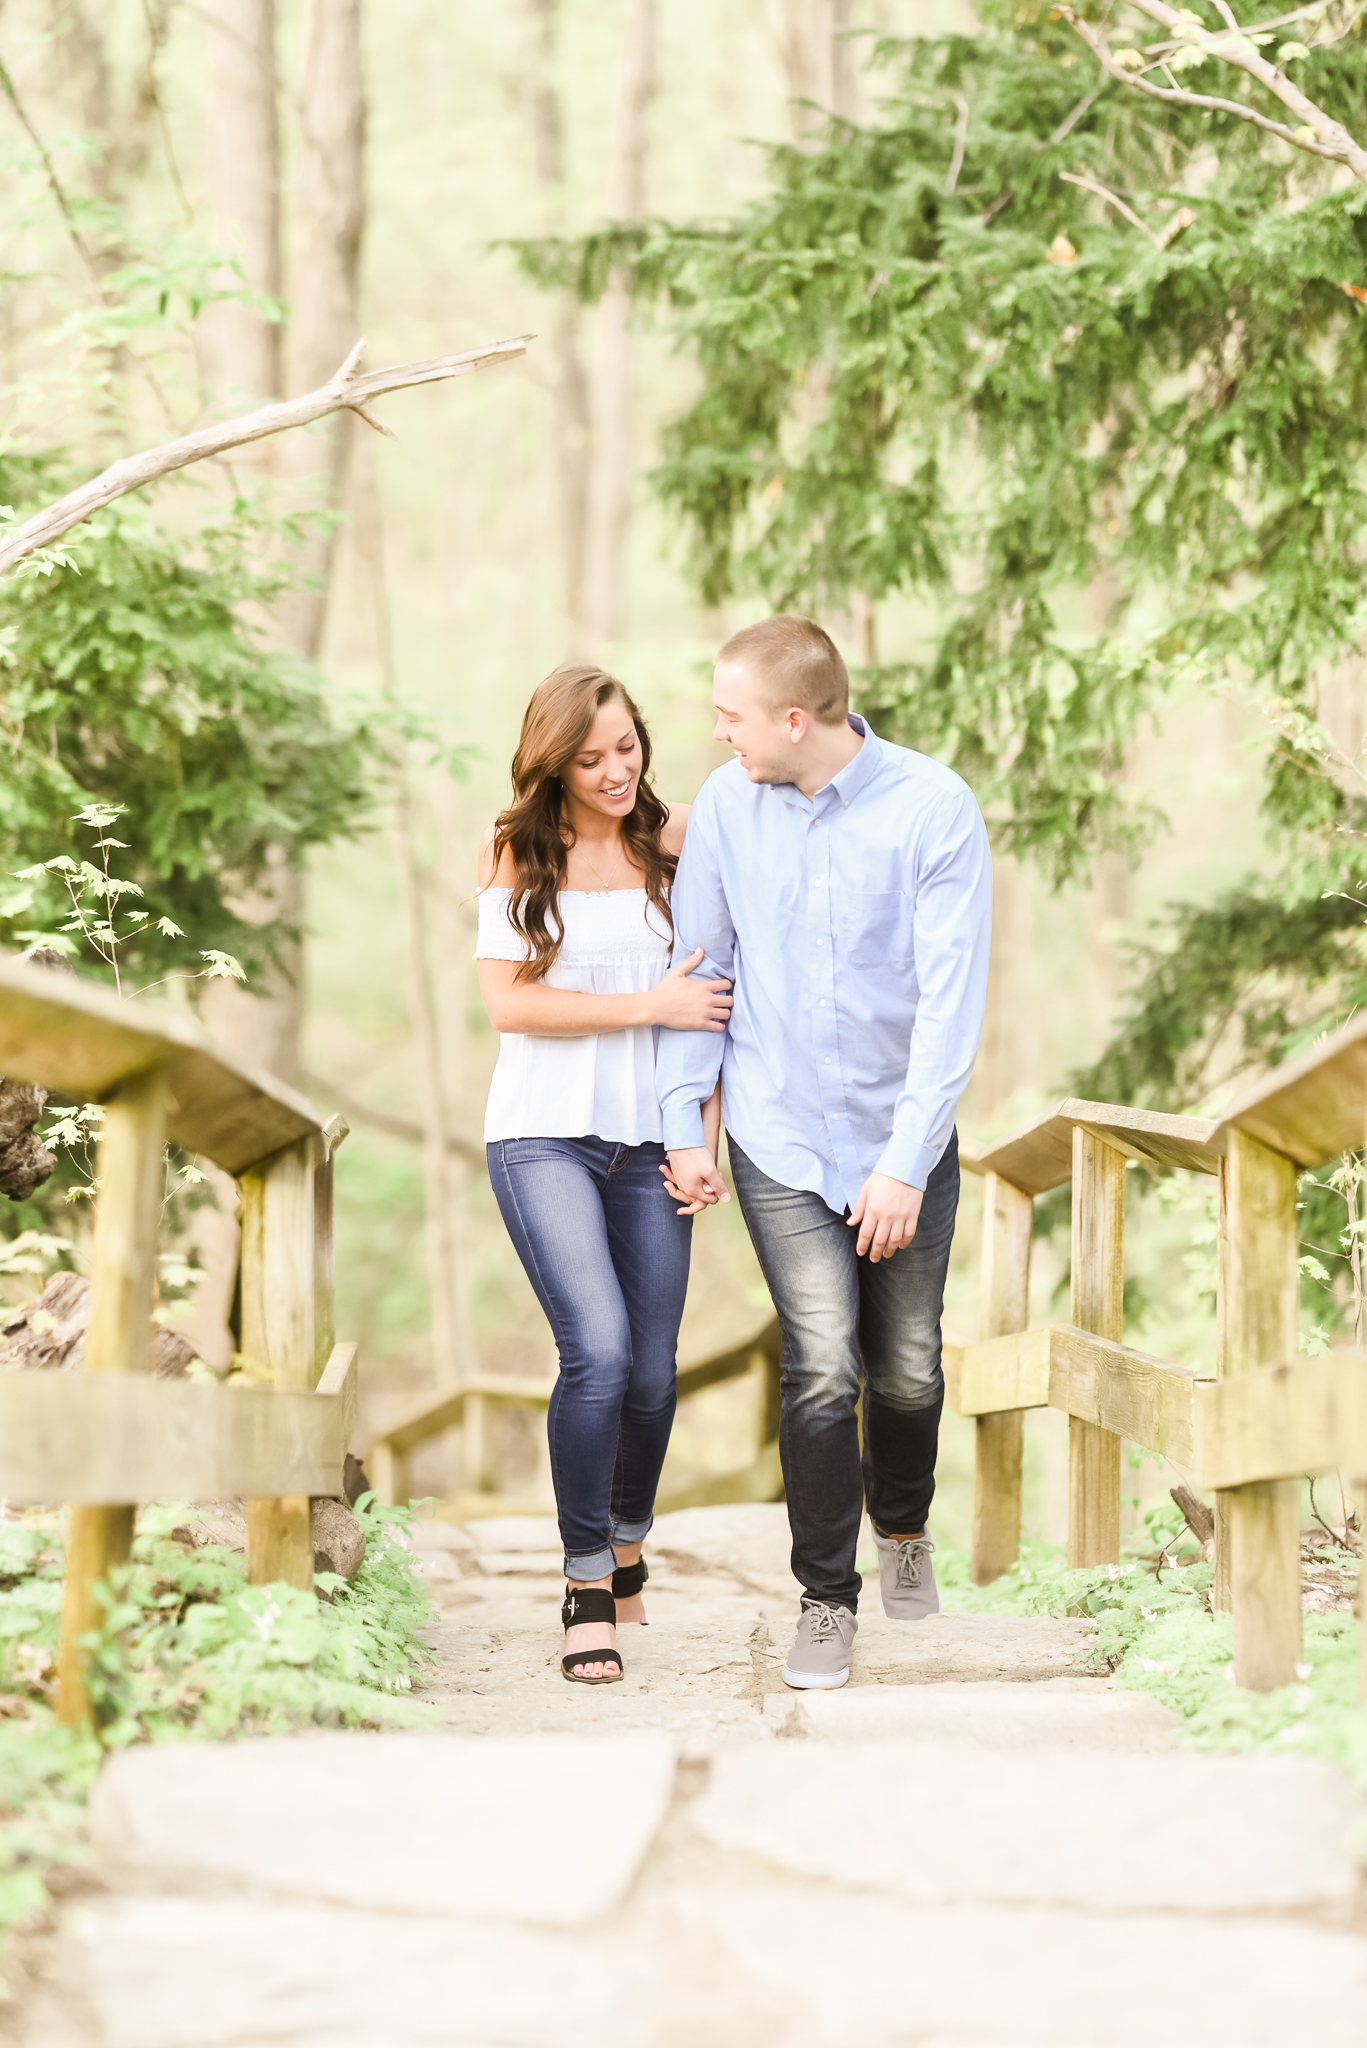 Holliday Park Engagement Session Indianapolis Wedding Photographer.jpg